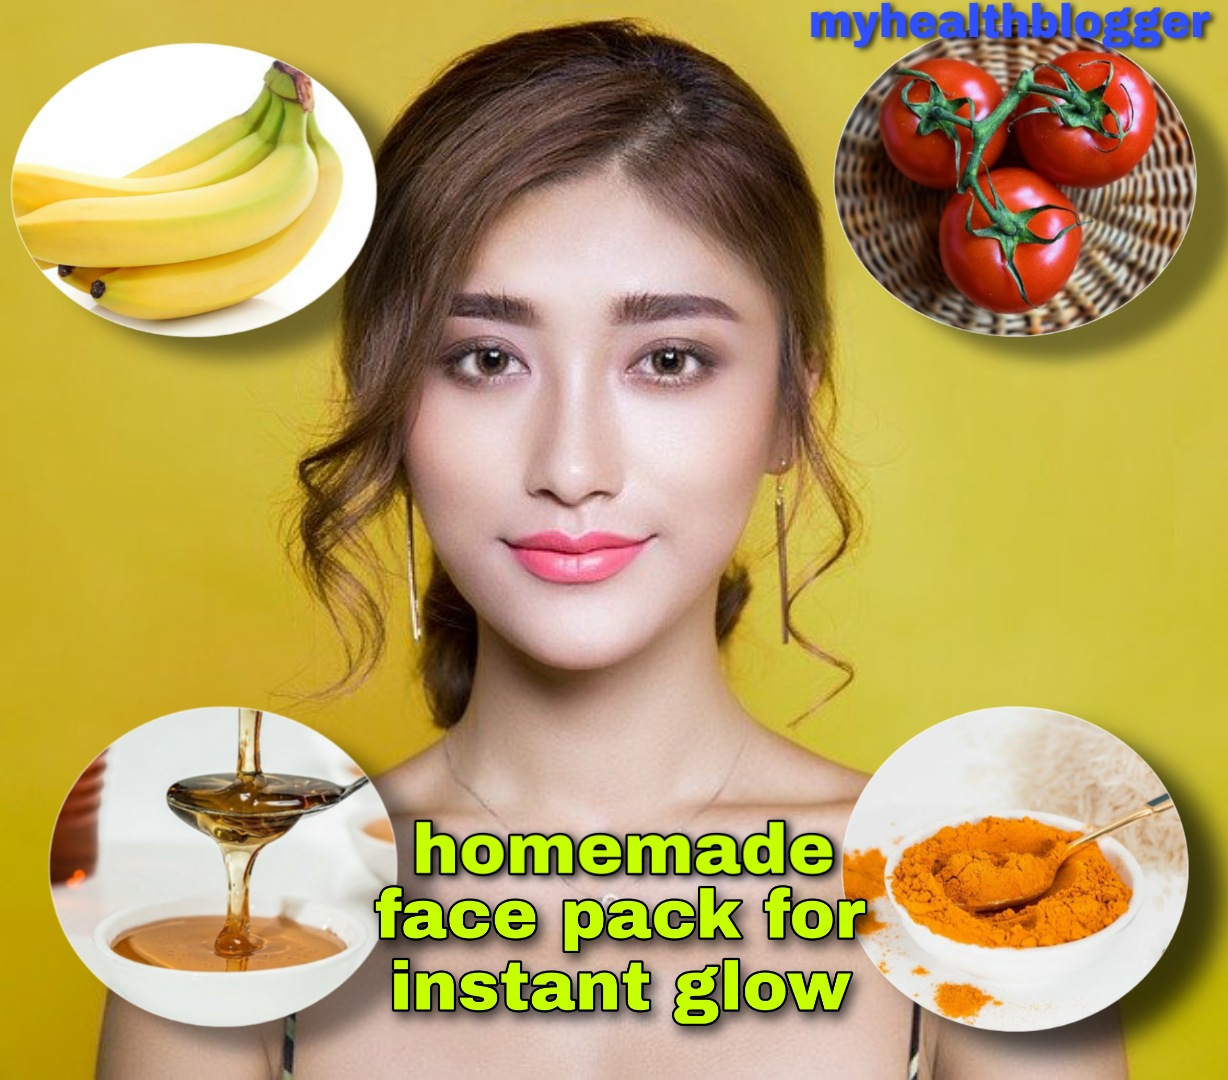 Homemade Face pack for Instant Glow